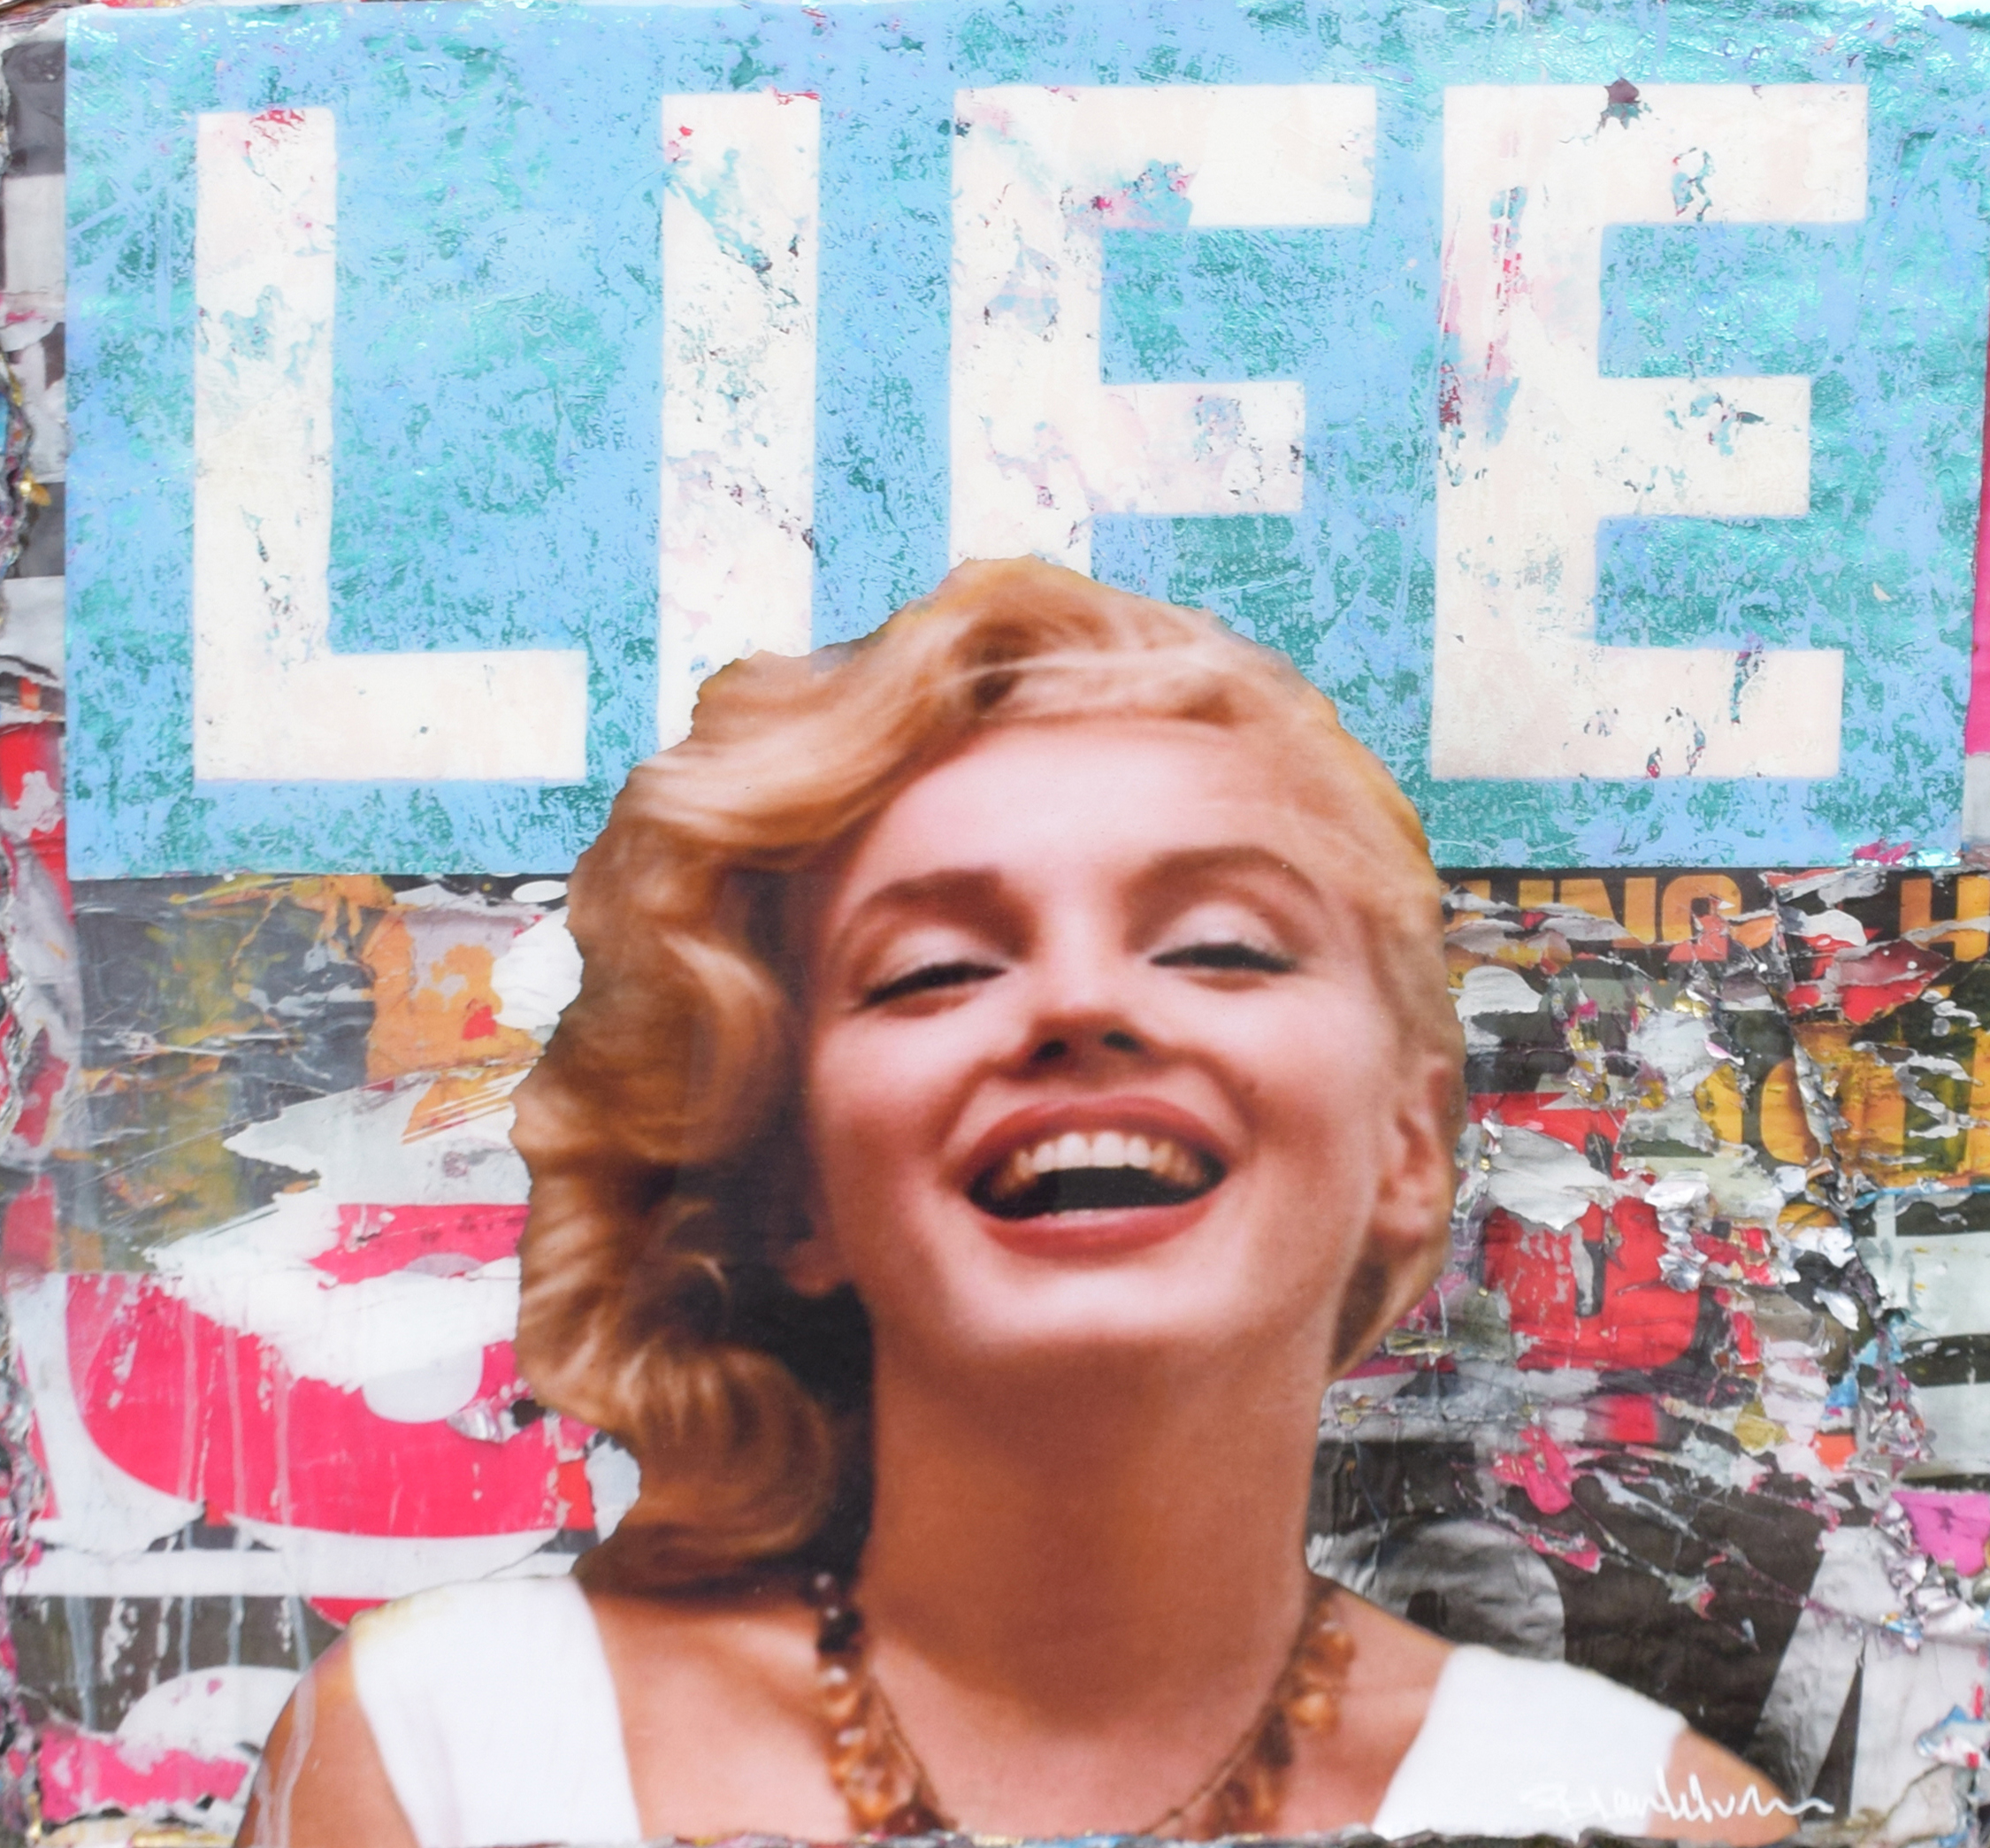 Bram Reijnders - Smile Marilyn , 8029-012-975